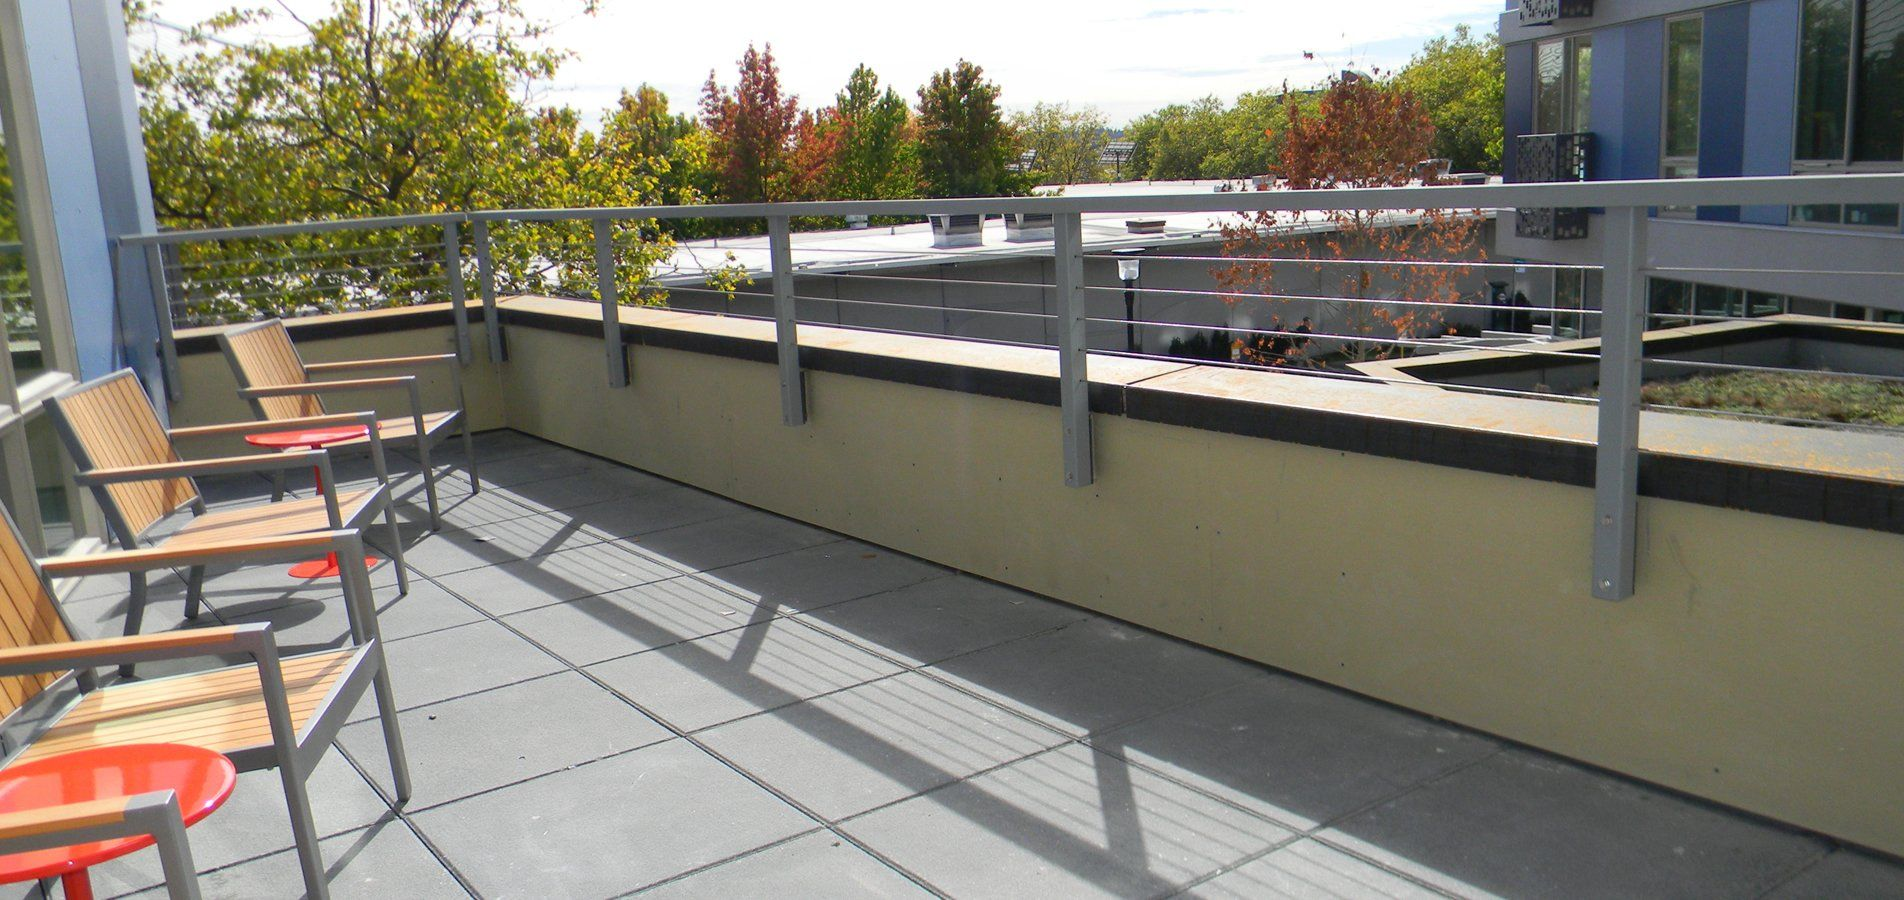 85782929 Parapet Mounted Stainless Steel Cable Rail Jpg 1904 900 House Cladding Roof Design Parapet